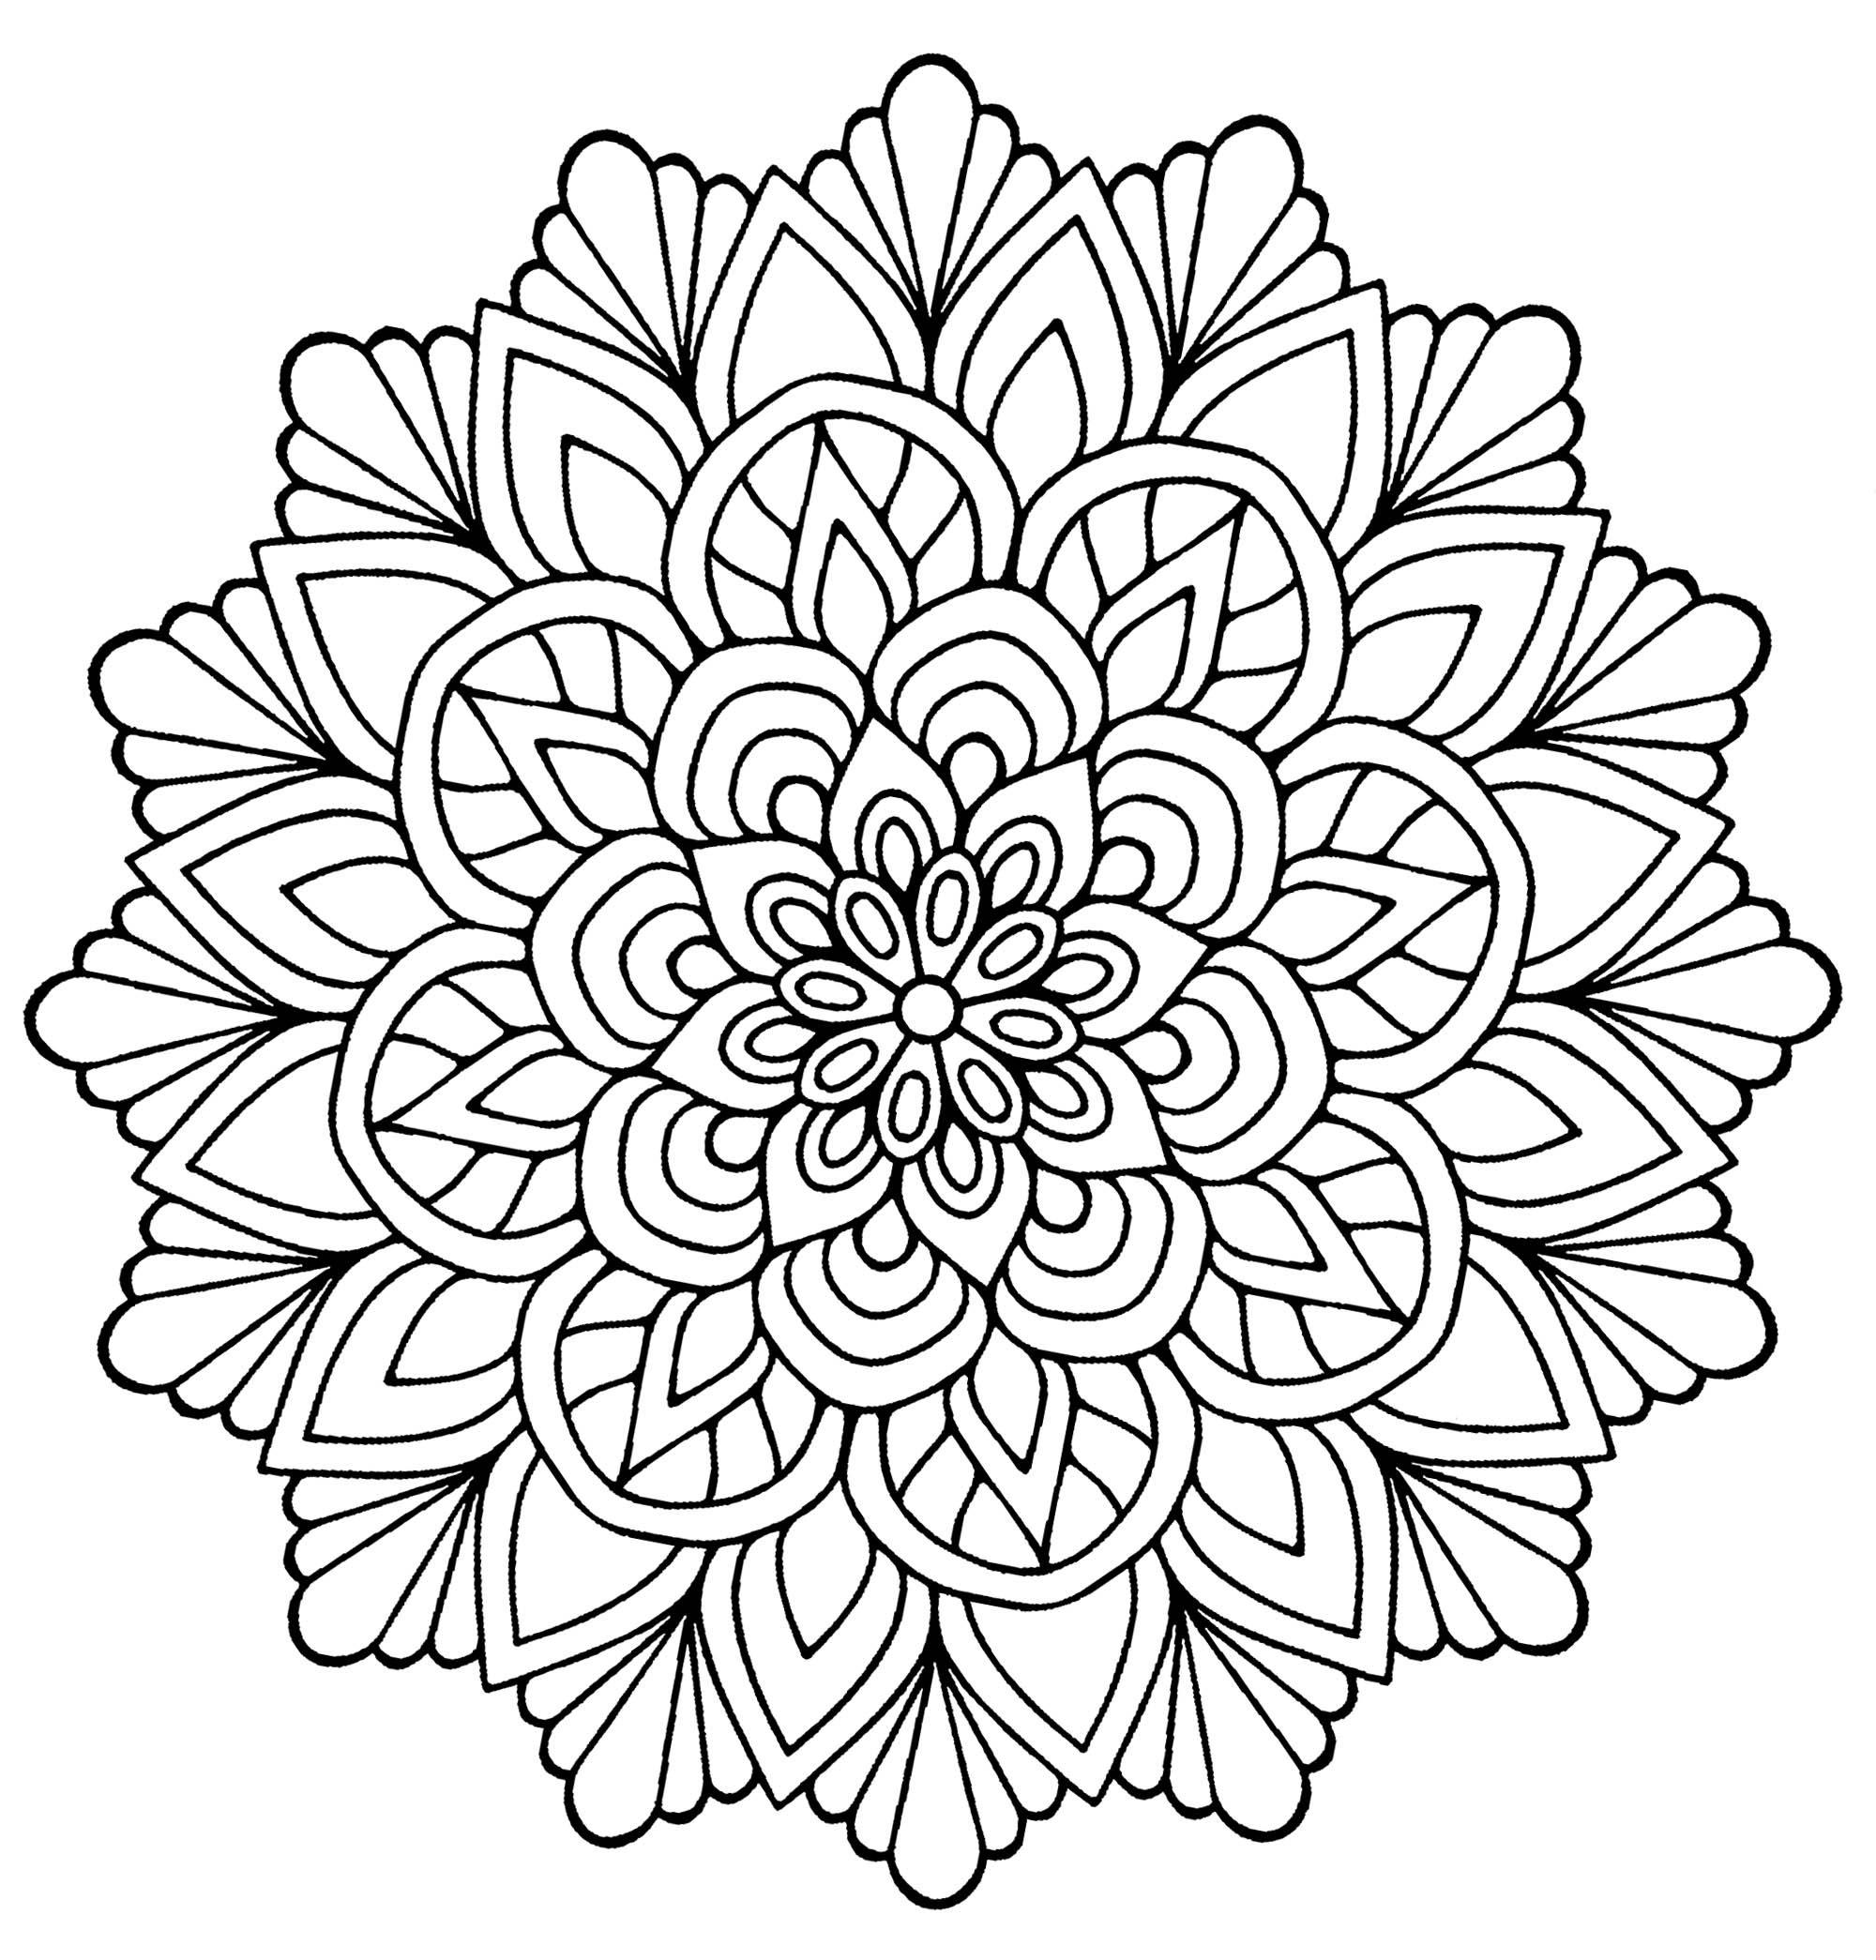 Download or print these amazing Mandala coloring pages at your own will and spread the news to your fellow Mandala fans too! Happy coloring